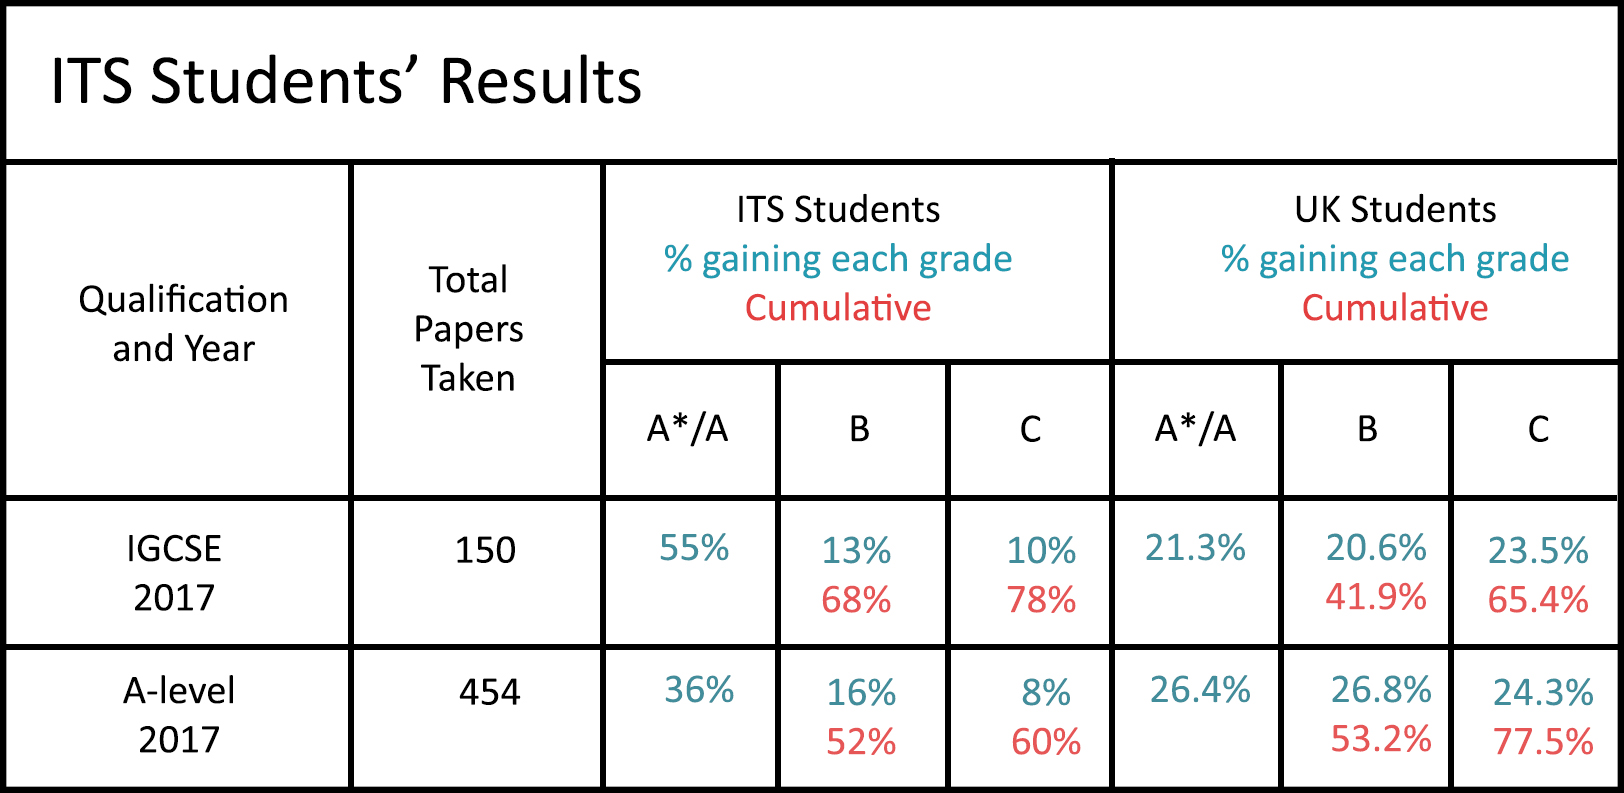 Results - ITS Education Asia - A-level & IGCSE